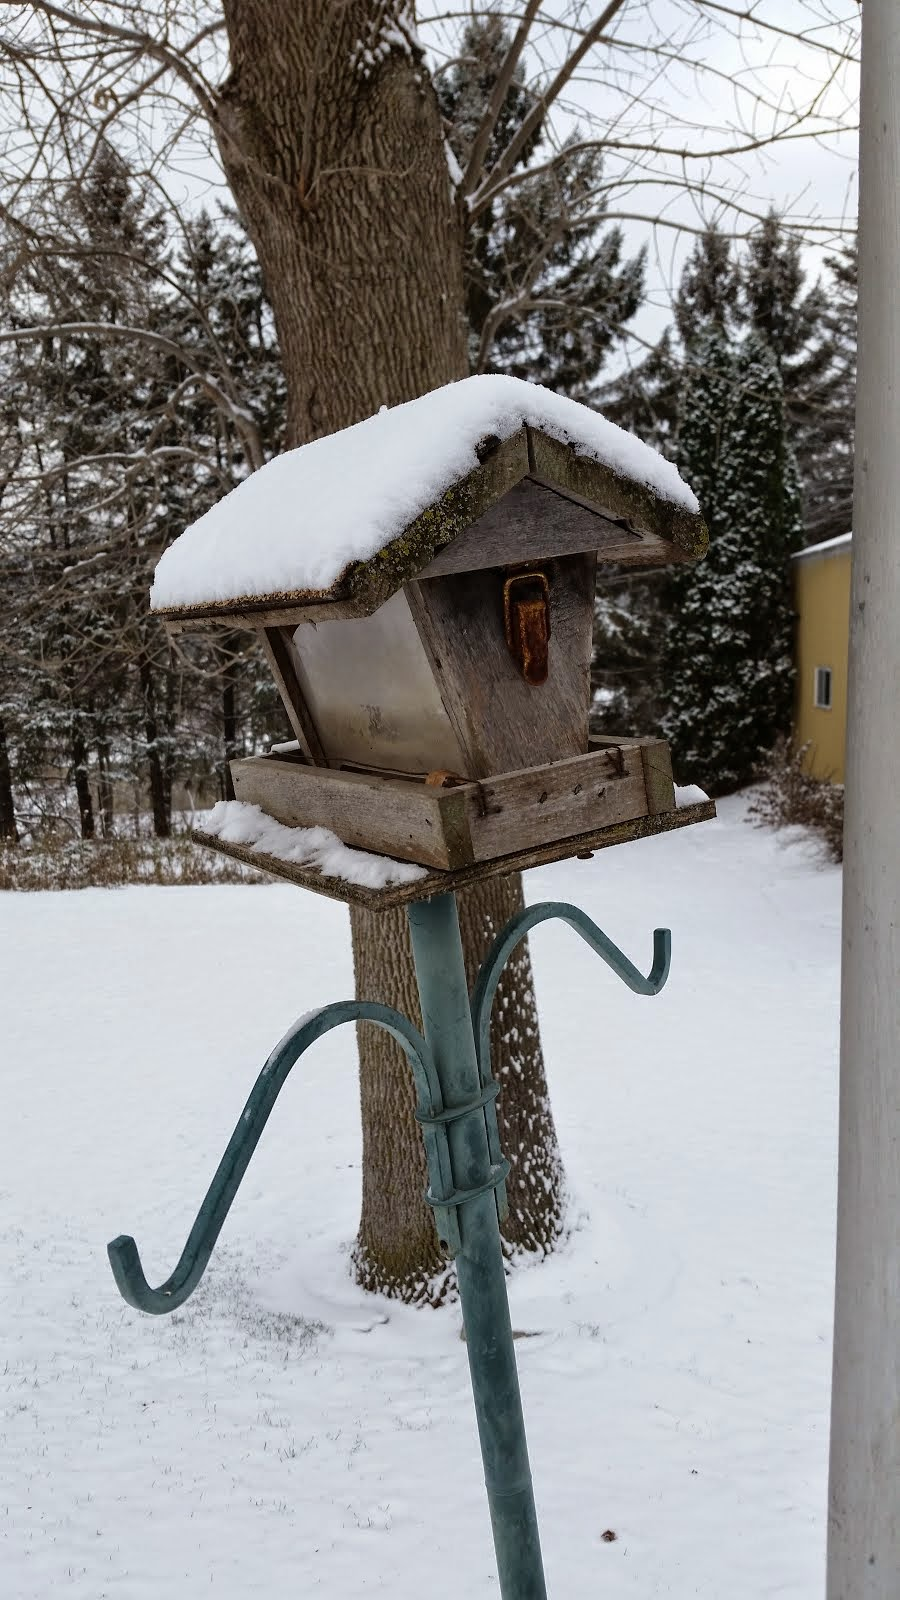 Backyard birdhouse snowed in